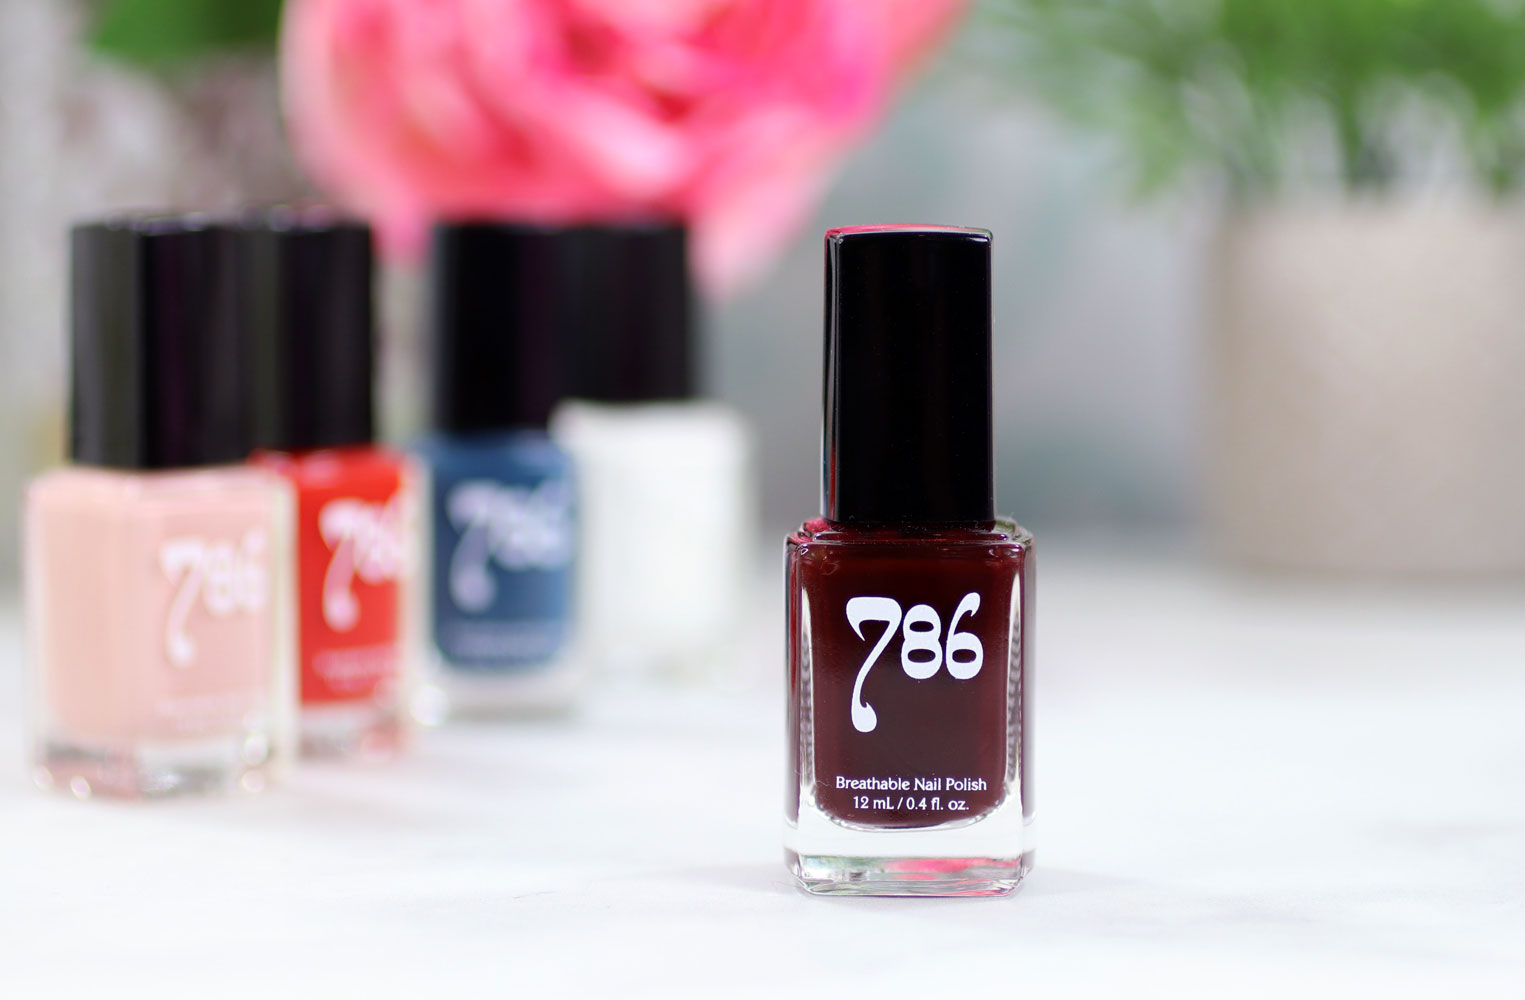 786 Cosmetics Breathable Cruelty Free and Vegan Nail Polish Review and Swatches - Istanbul